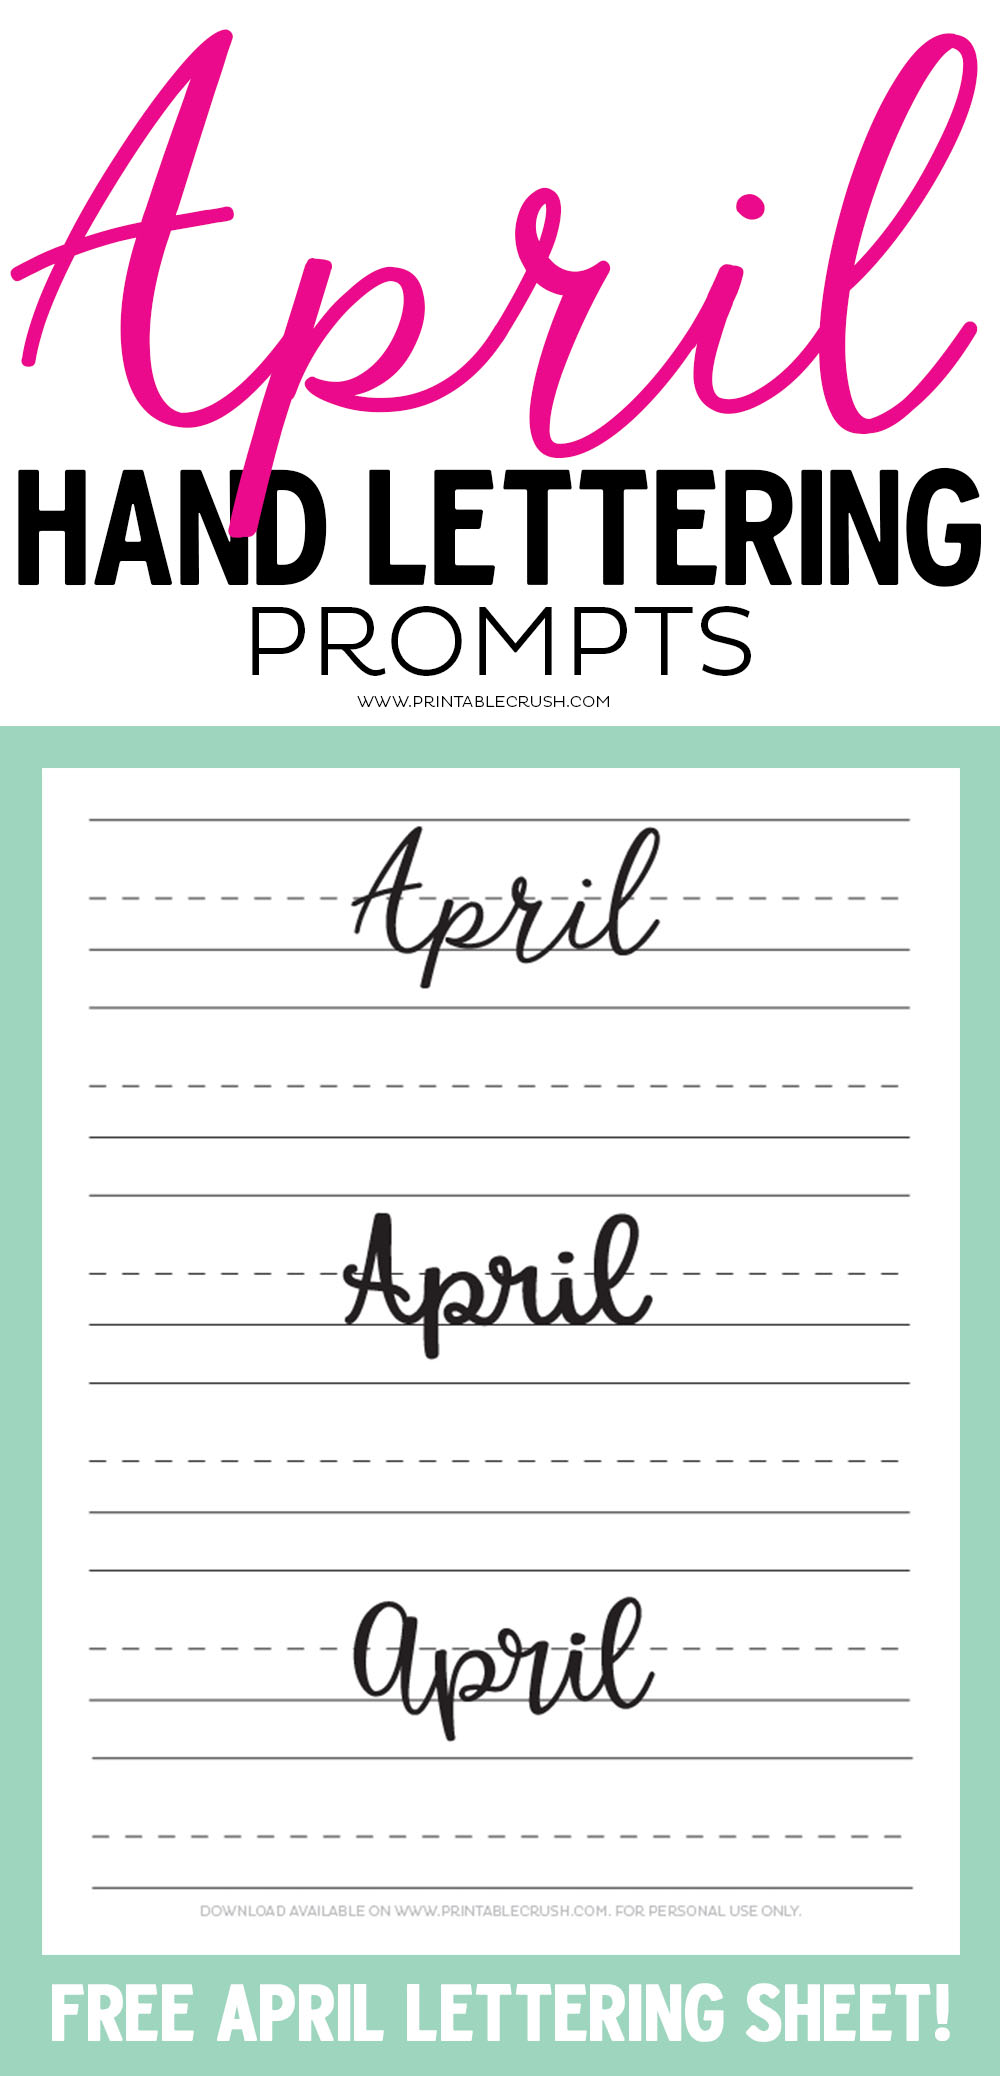 Get 30 April Hand Lettering Prompts plus a FREE practice sheet in this blog series to improve your hand lettering skills. Plus, learn how you can get 30 days of APRIL lettering worksheets!